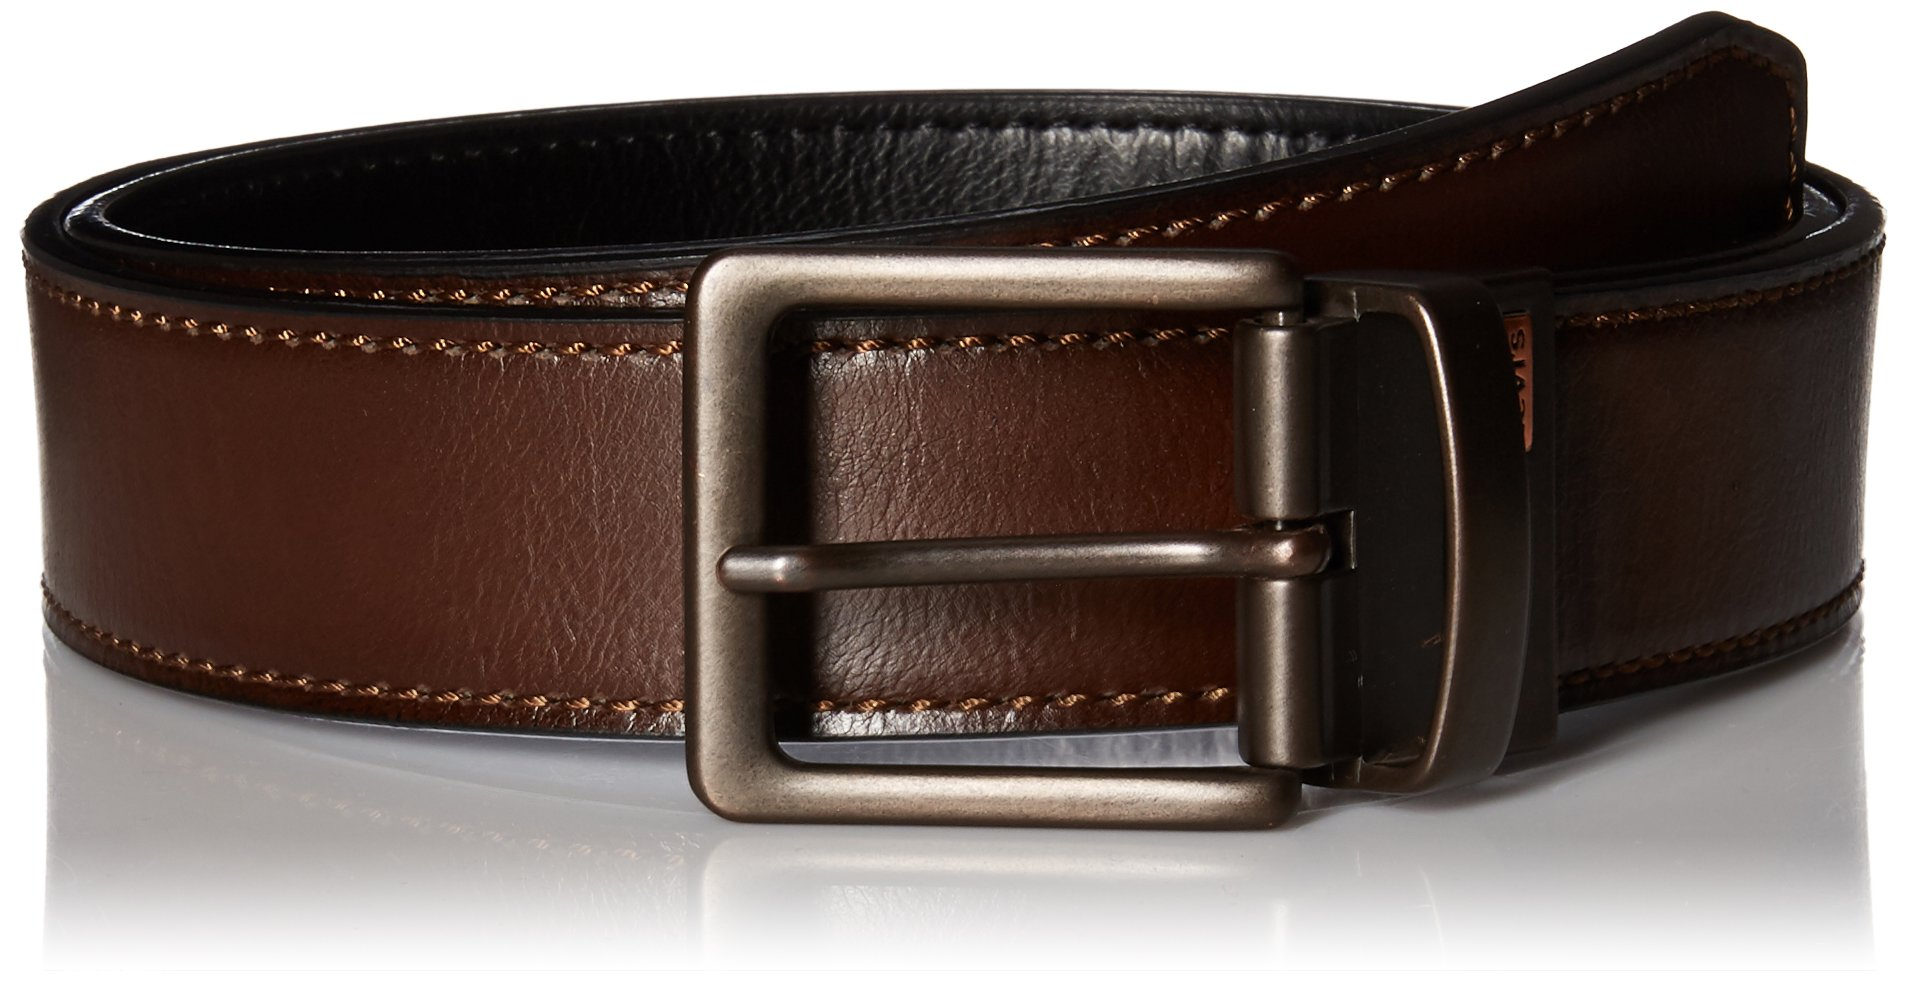 Levi's Men's Reversible Bridle Belt W/antique Finish Buckle,Brown/Black,38